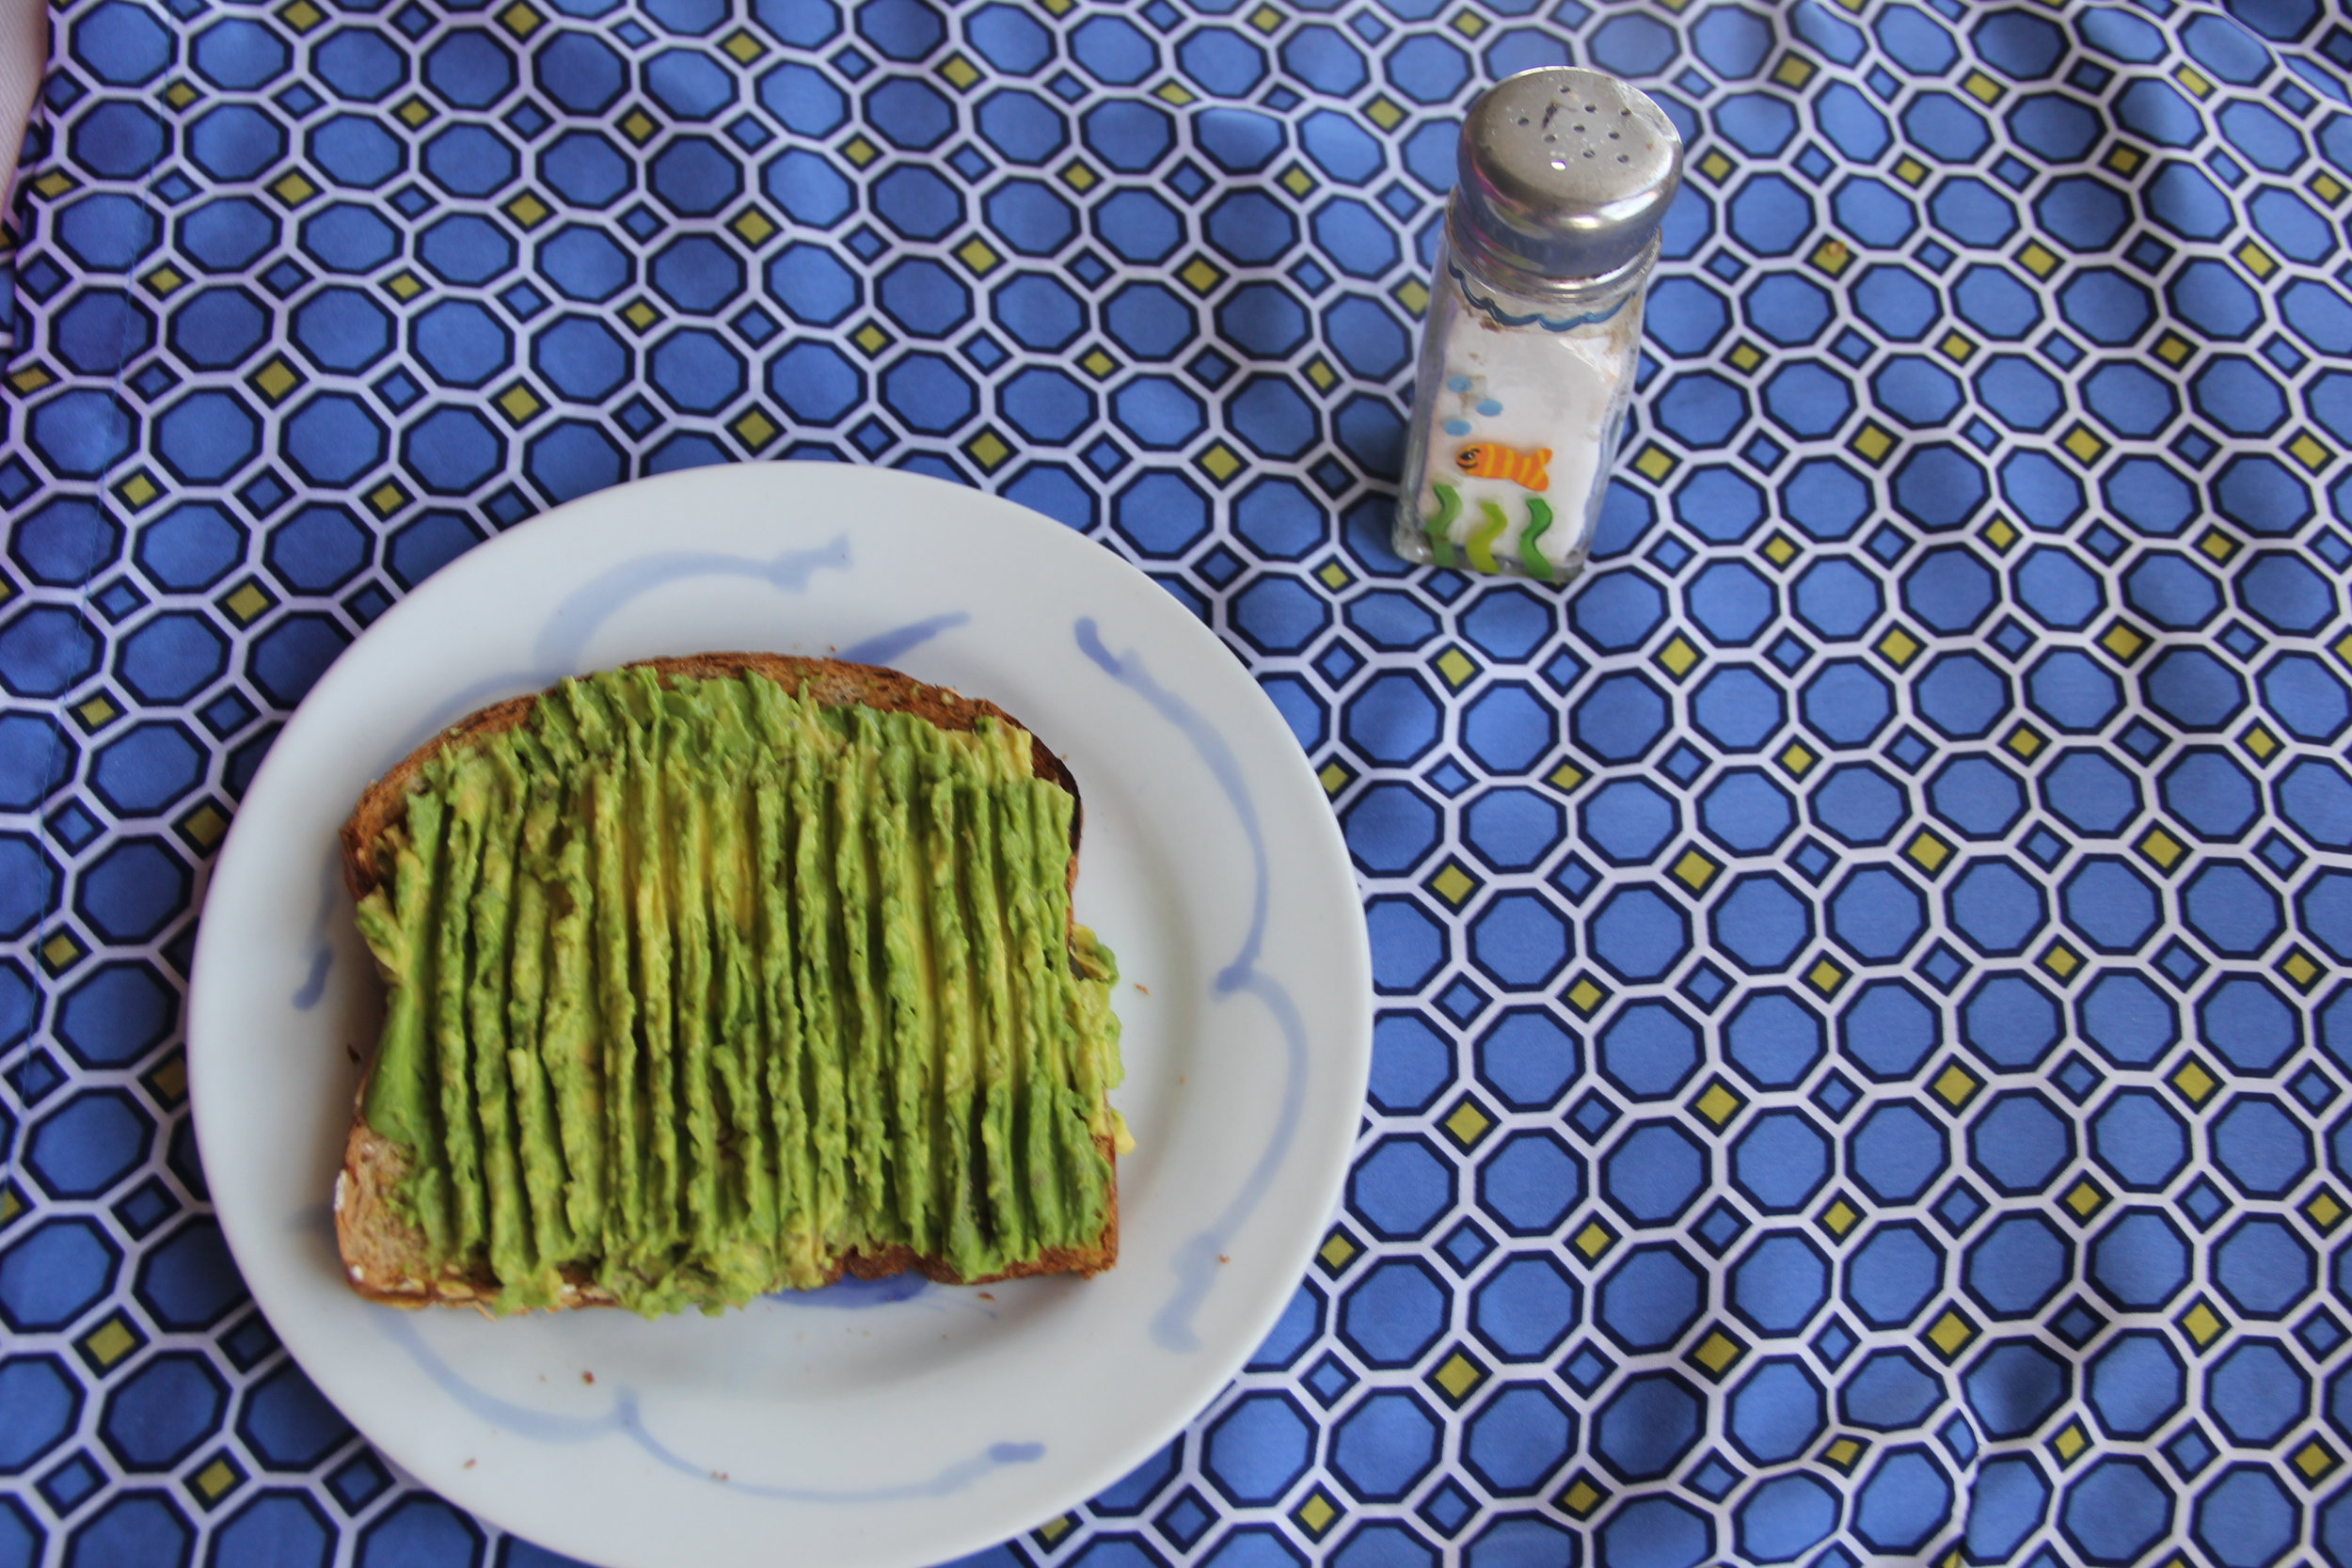 The minerals potassium, magnesium and calcium in the avocado offset the sodium content you are adding to make this avocado toast taste good.  I don't worry about sodium when it's added to a plant food like this, because those minerals actually have the ability to displace it.  Mind blown!